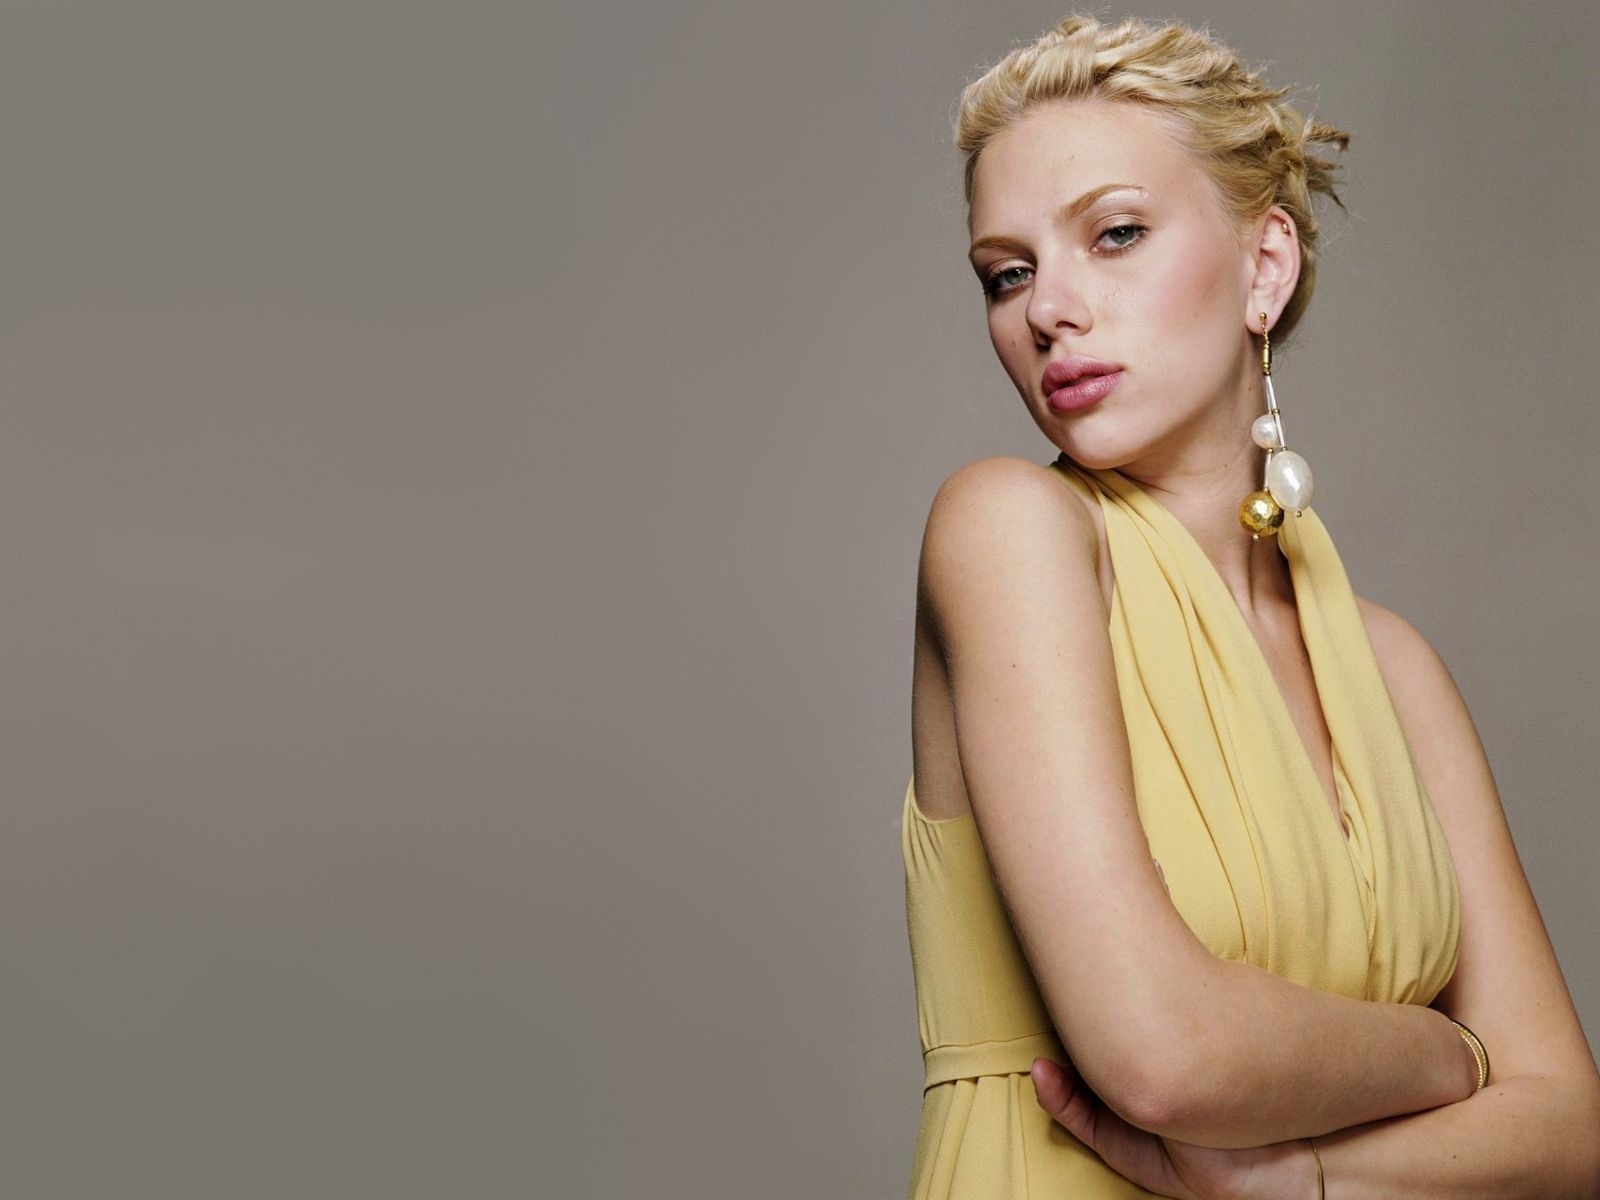 Scarlett Johansson Wallpaper: Scarlett Johansson Profile And Latest Hot Wallpaper